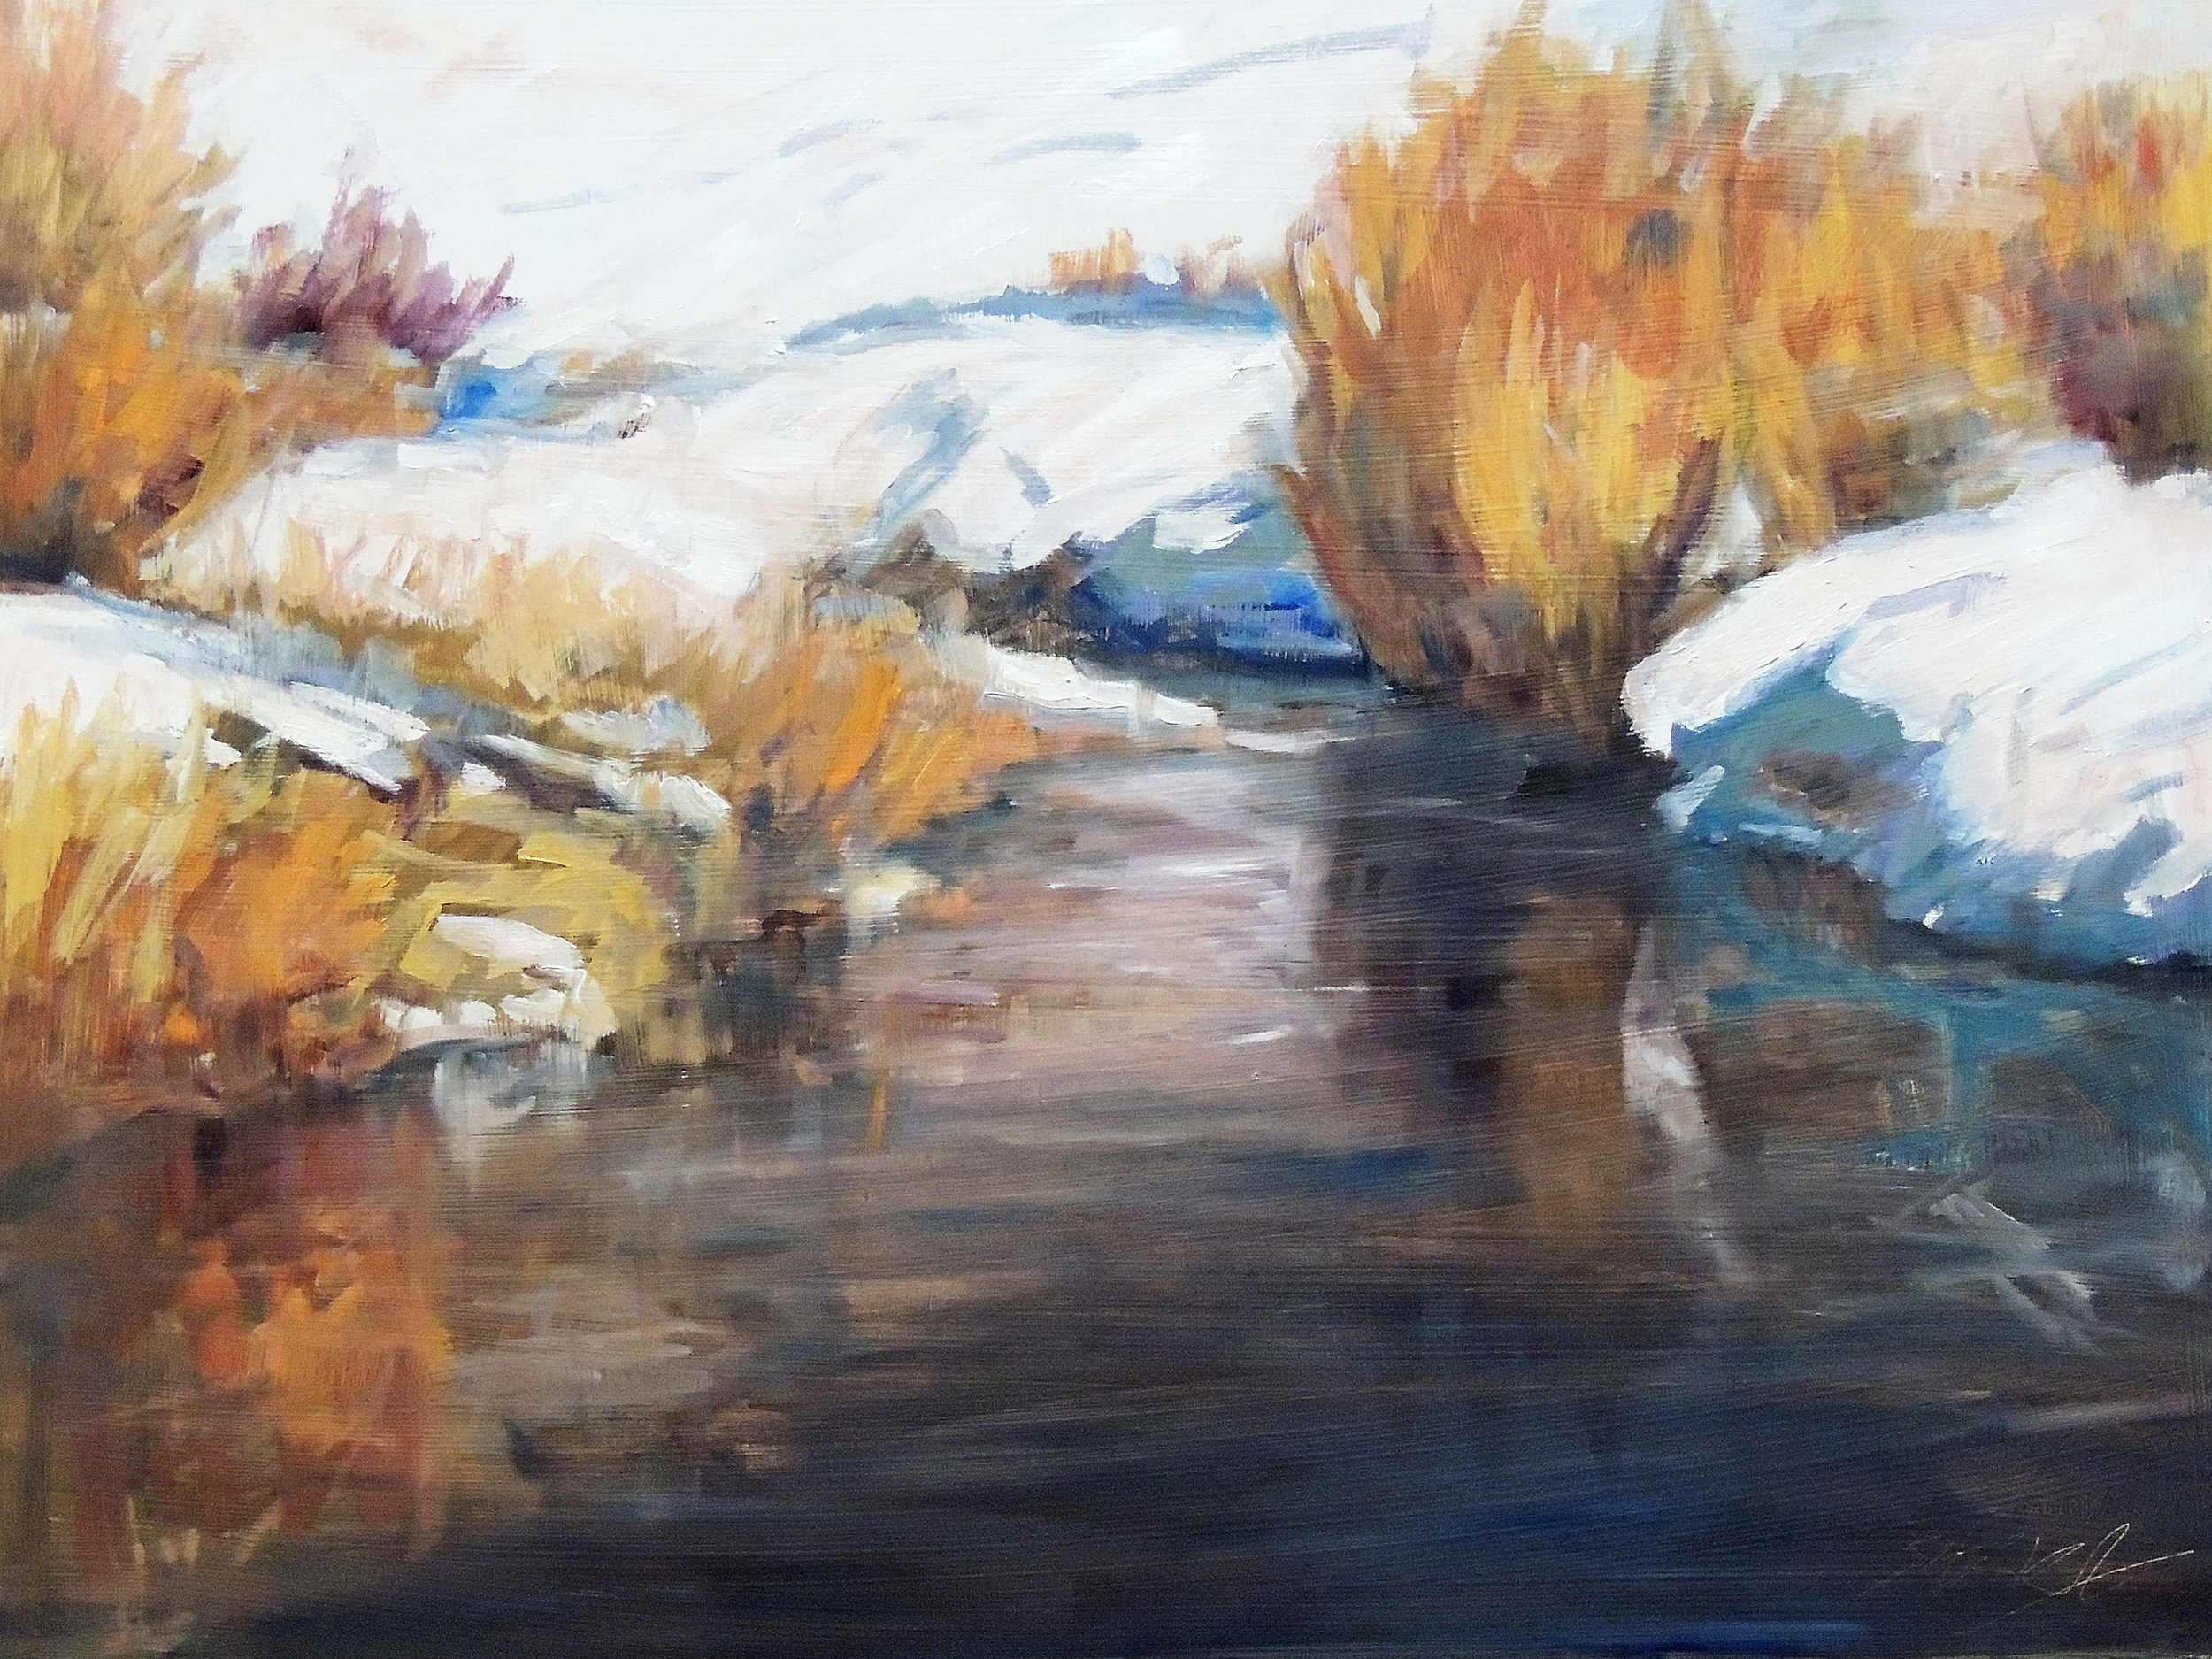 Blue River with Snow  18x24